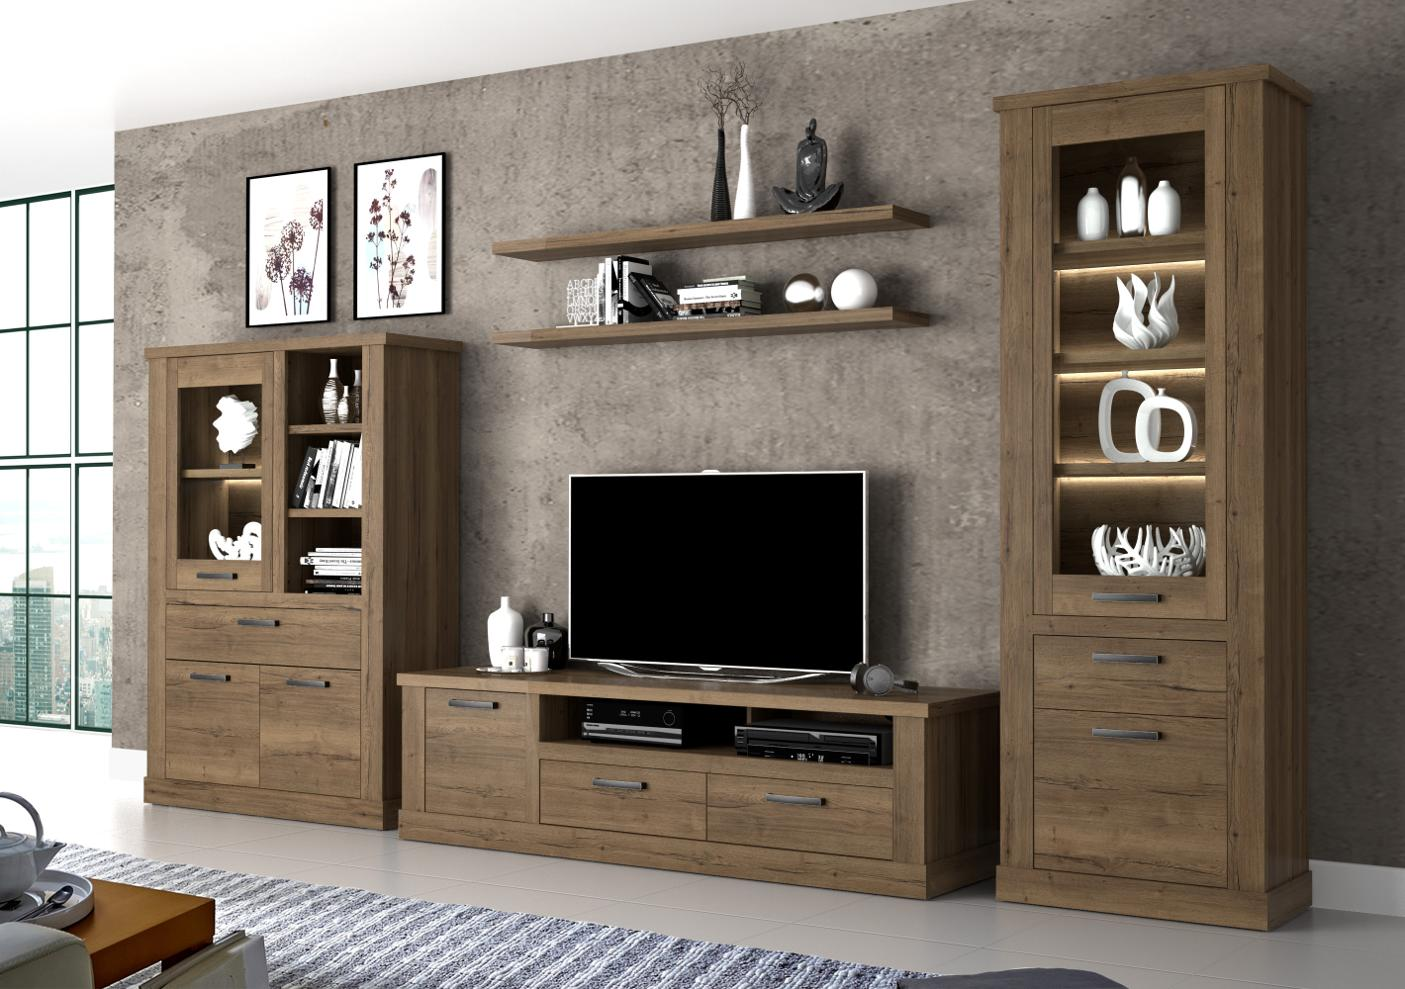 wandregal ca 140 cm breit corona von forte eiche tabak. Black Bedroom Furniture Sets. Home Design Ideas